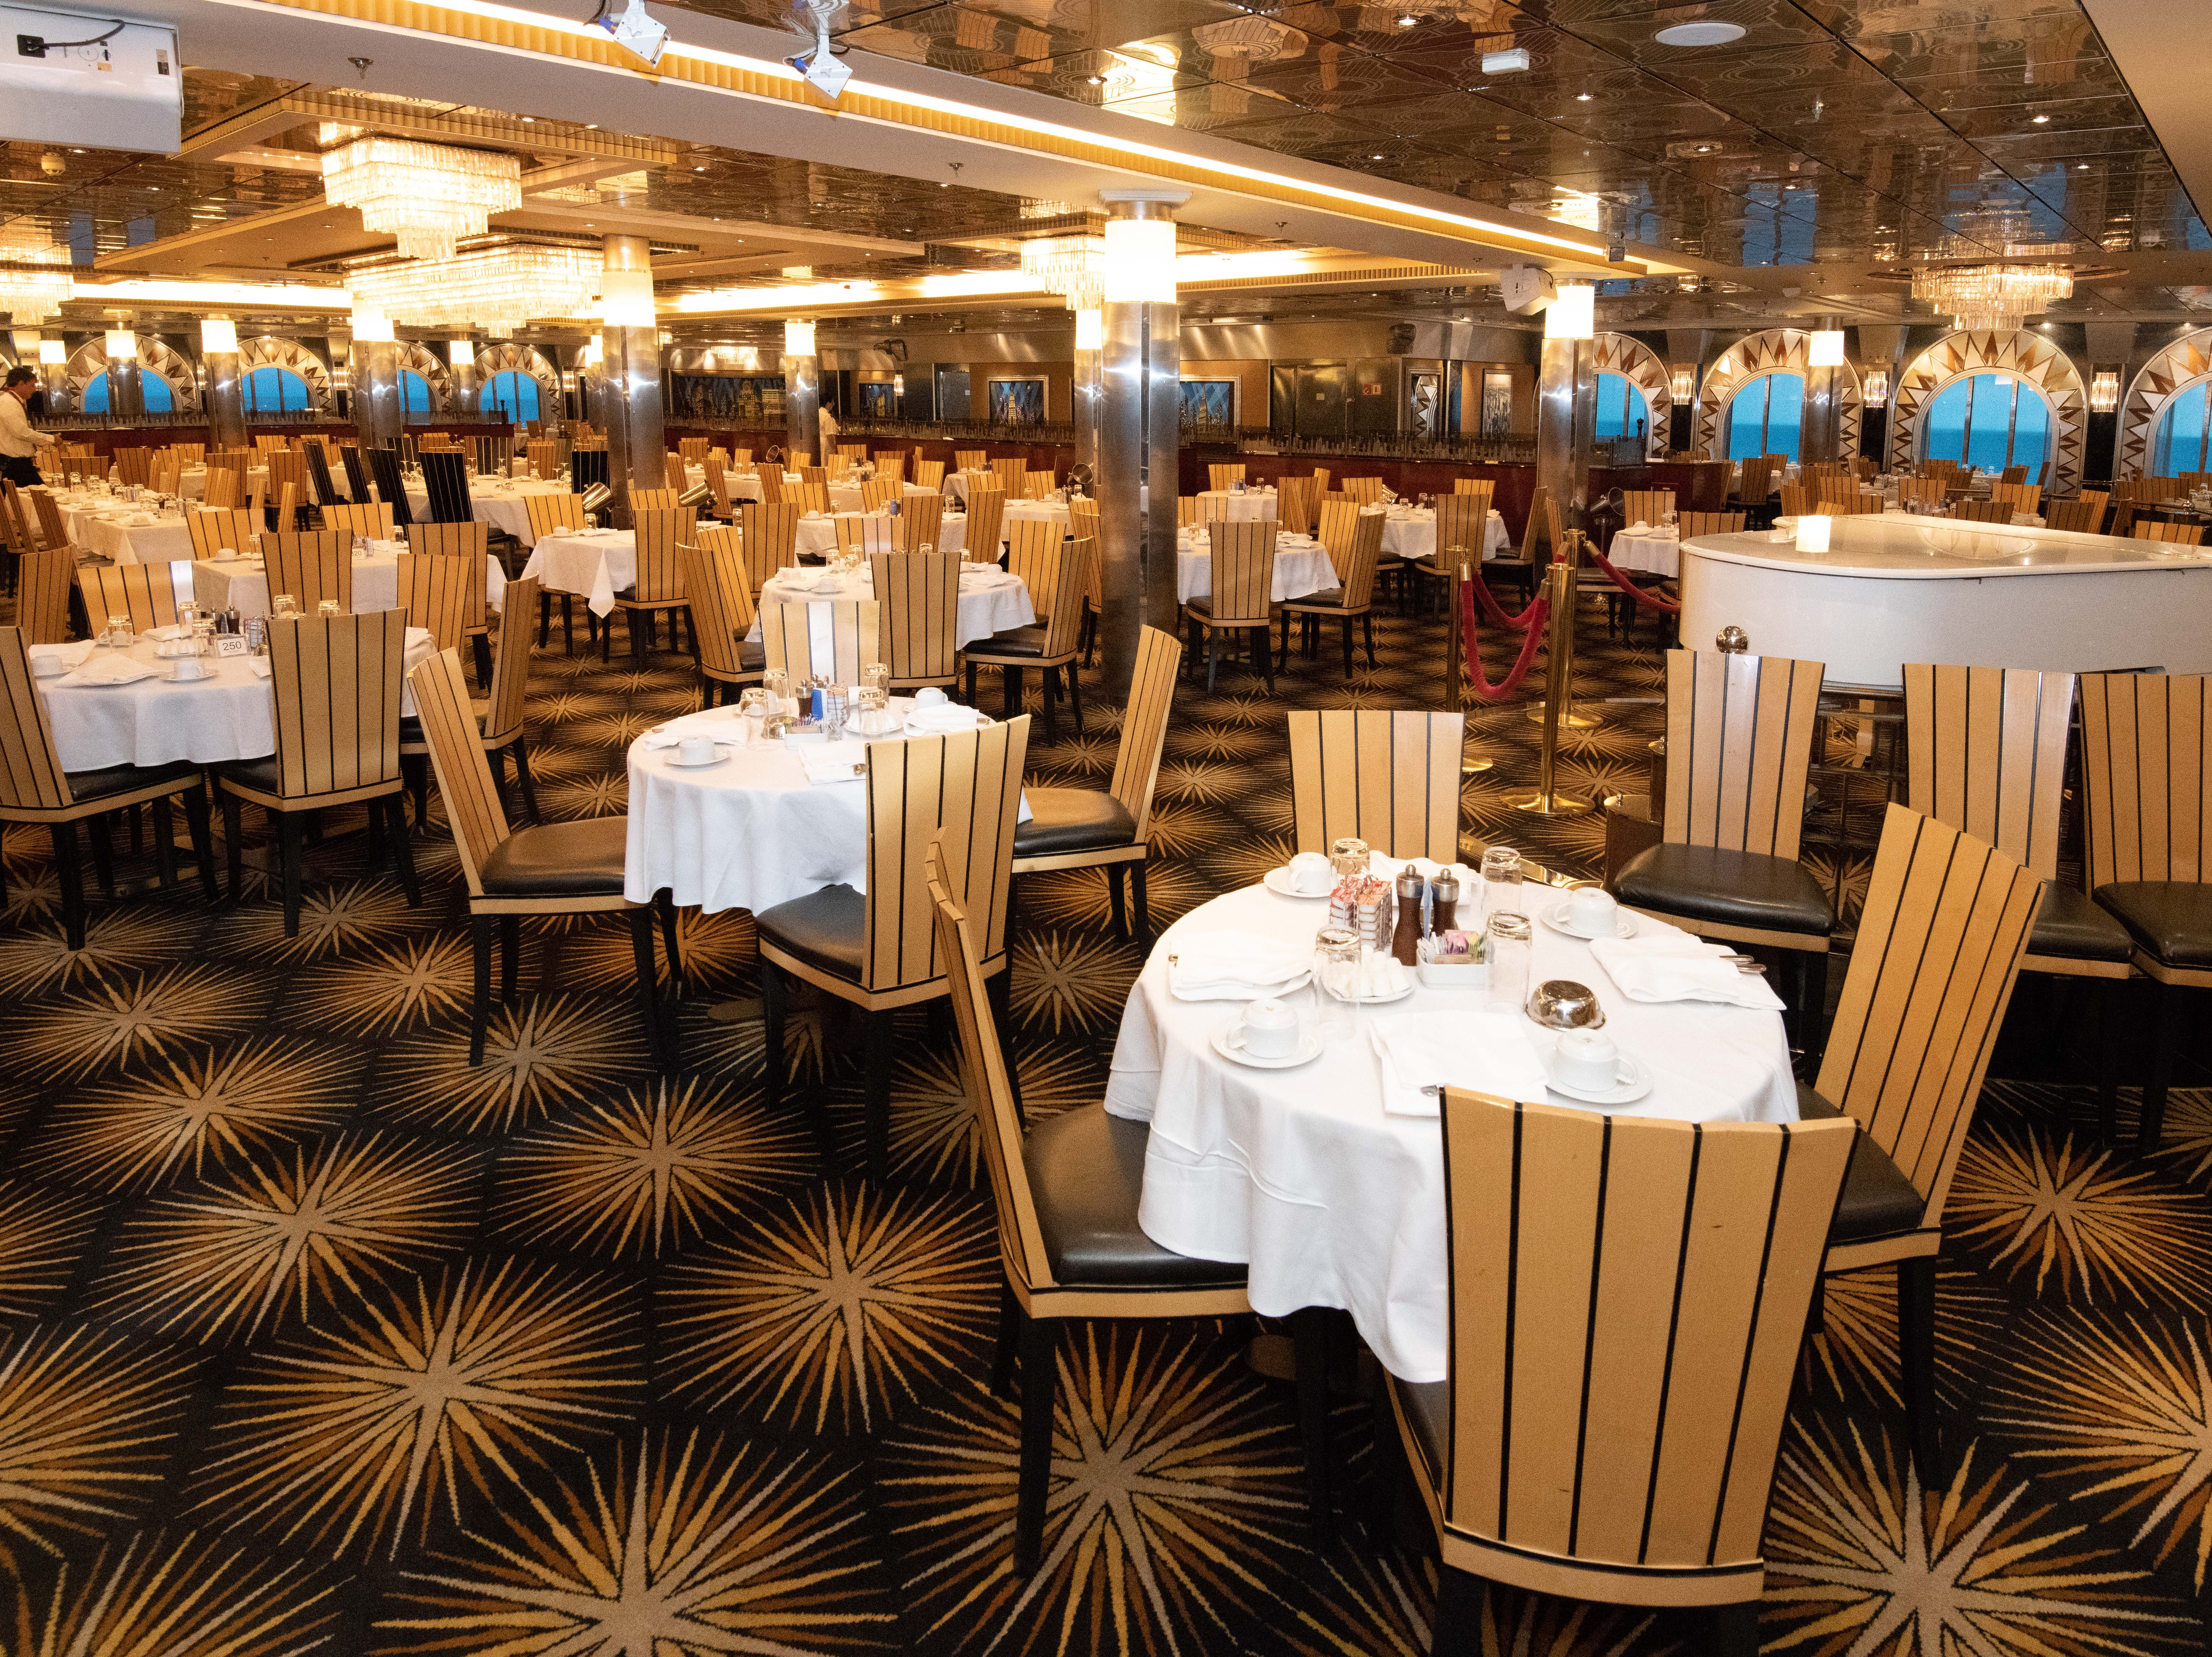 Pride of America offers six complimentary dining options, one of the biggest of which is the 574-seat Skyline Main Dining Room.